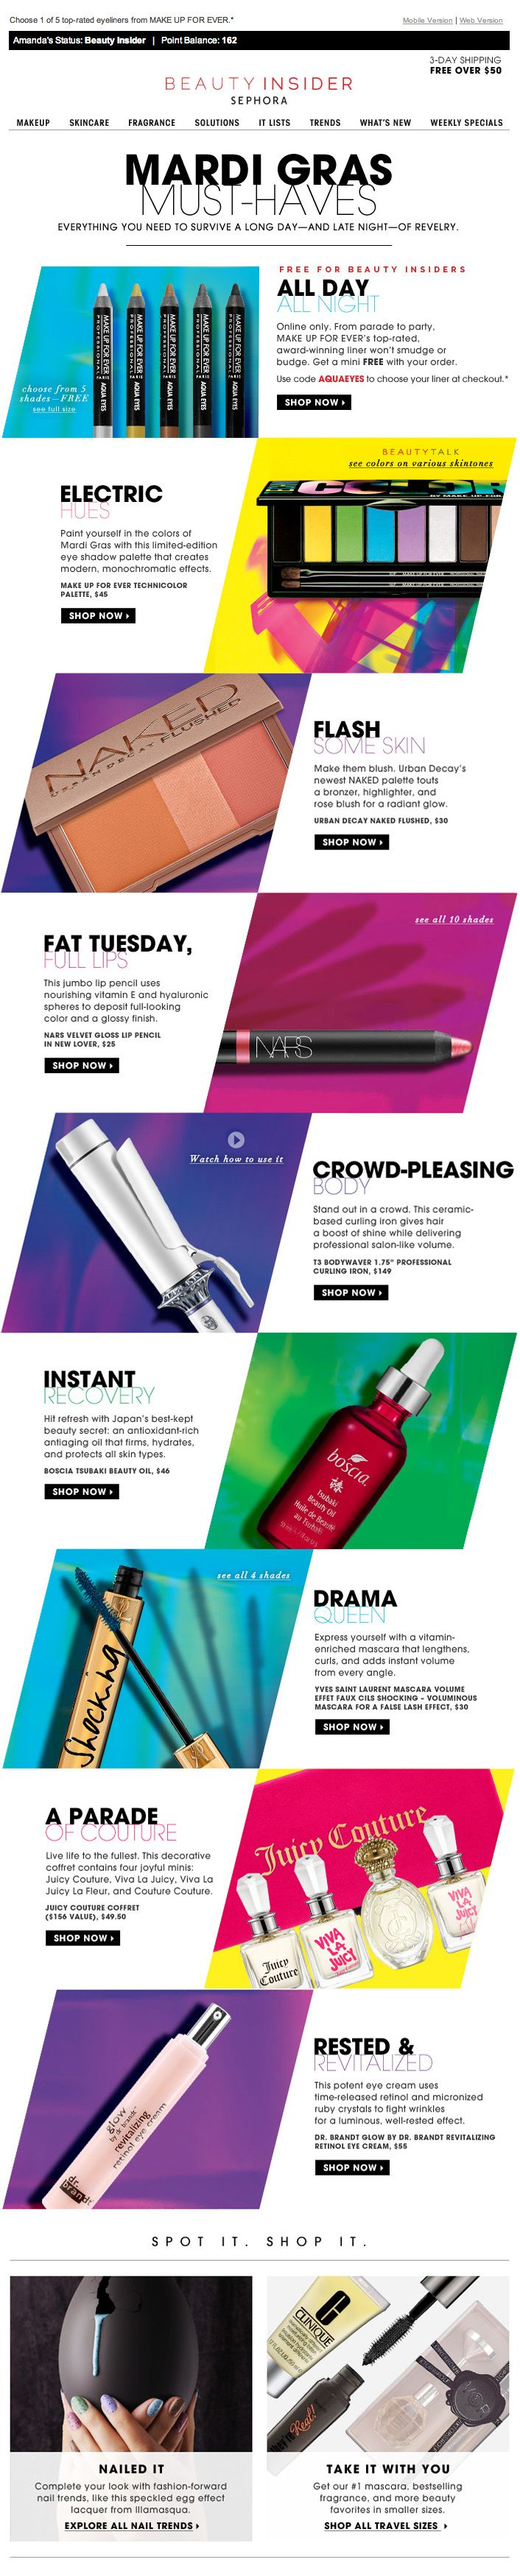 Sephora Beauty Insider Email Design - Excellent Emphasis on Products